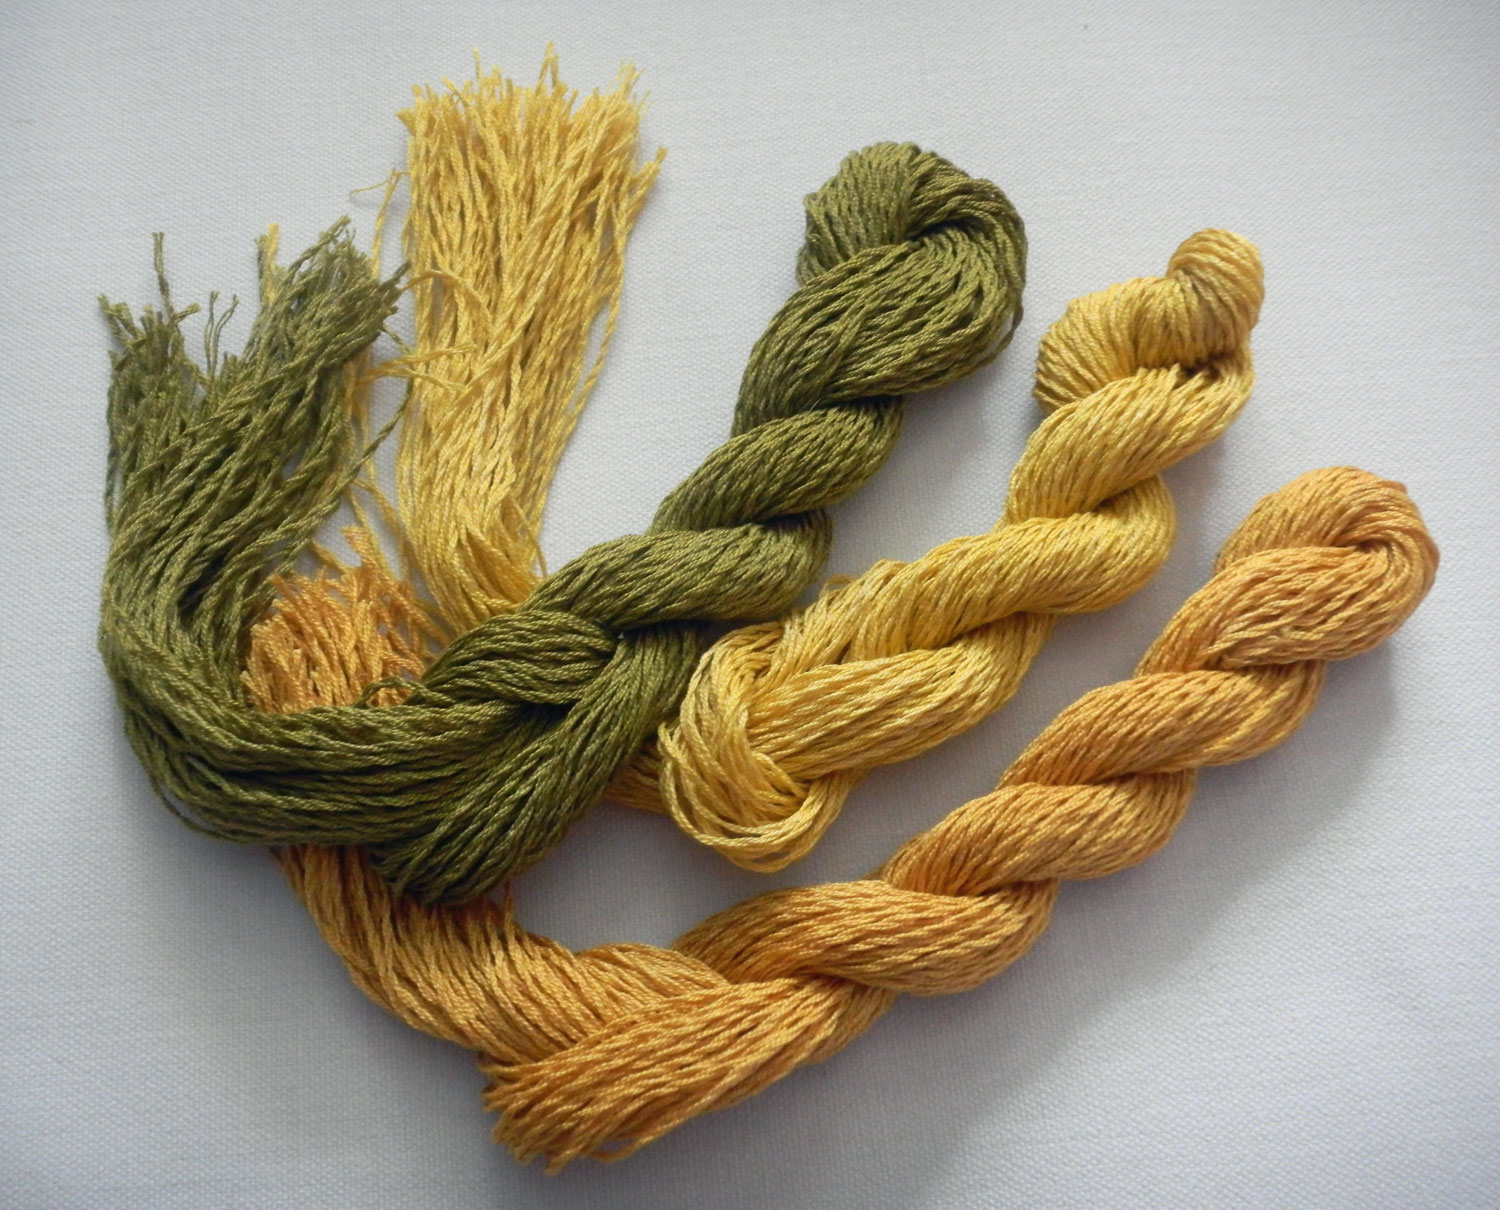 Red Onion Skin, Dahlia overdyed with marigold, and Yellow Onion Skin, by Kelly McKaig